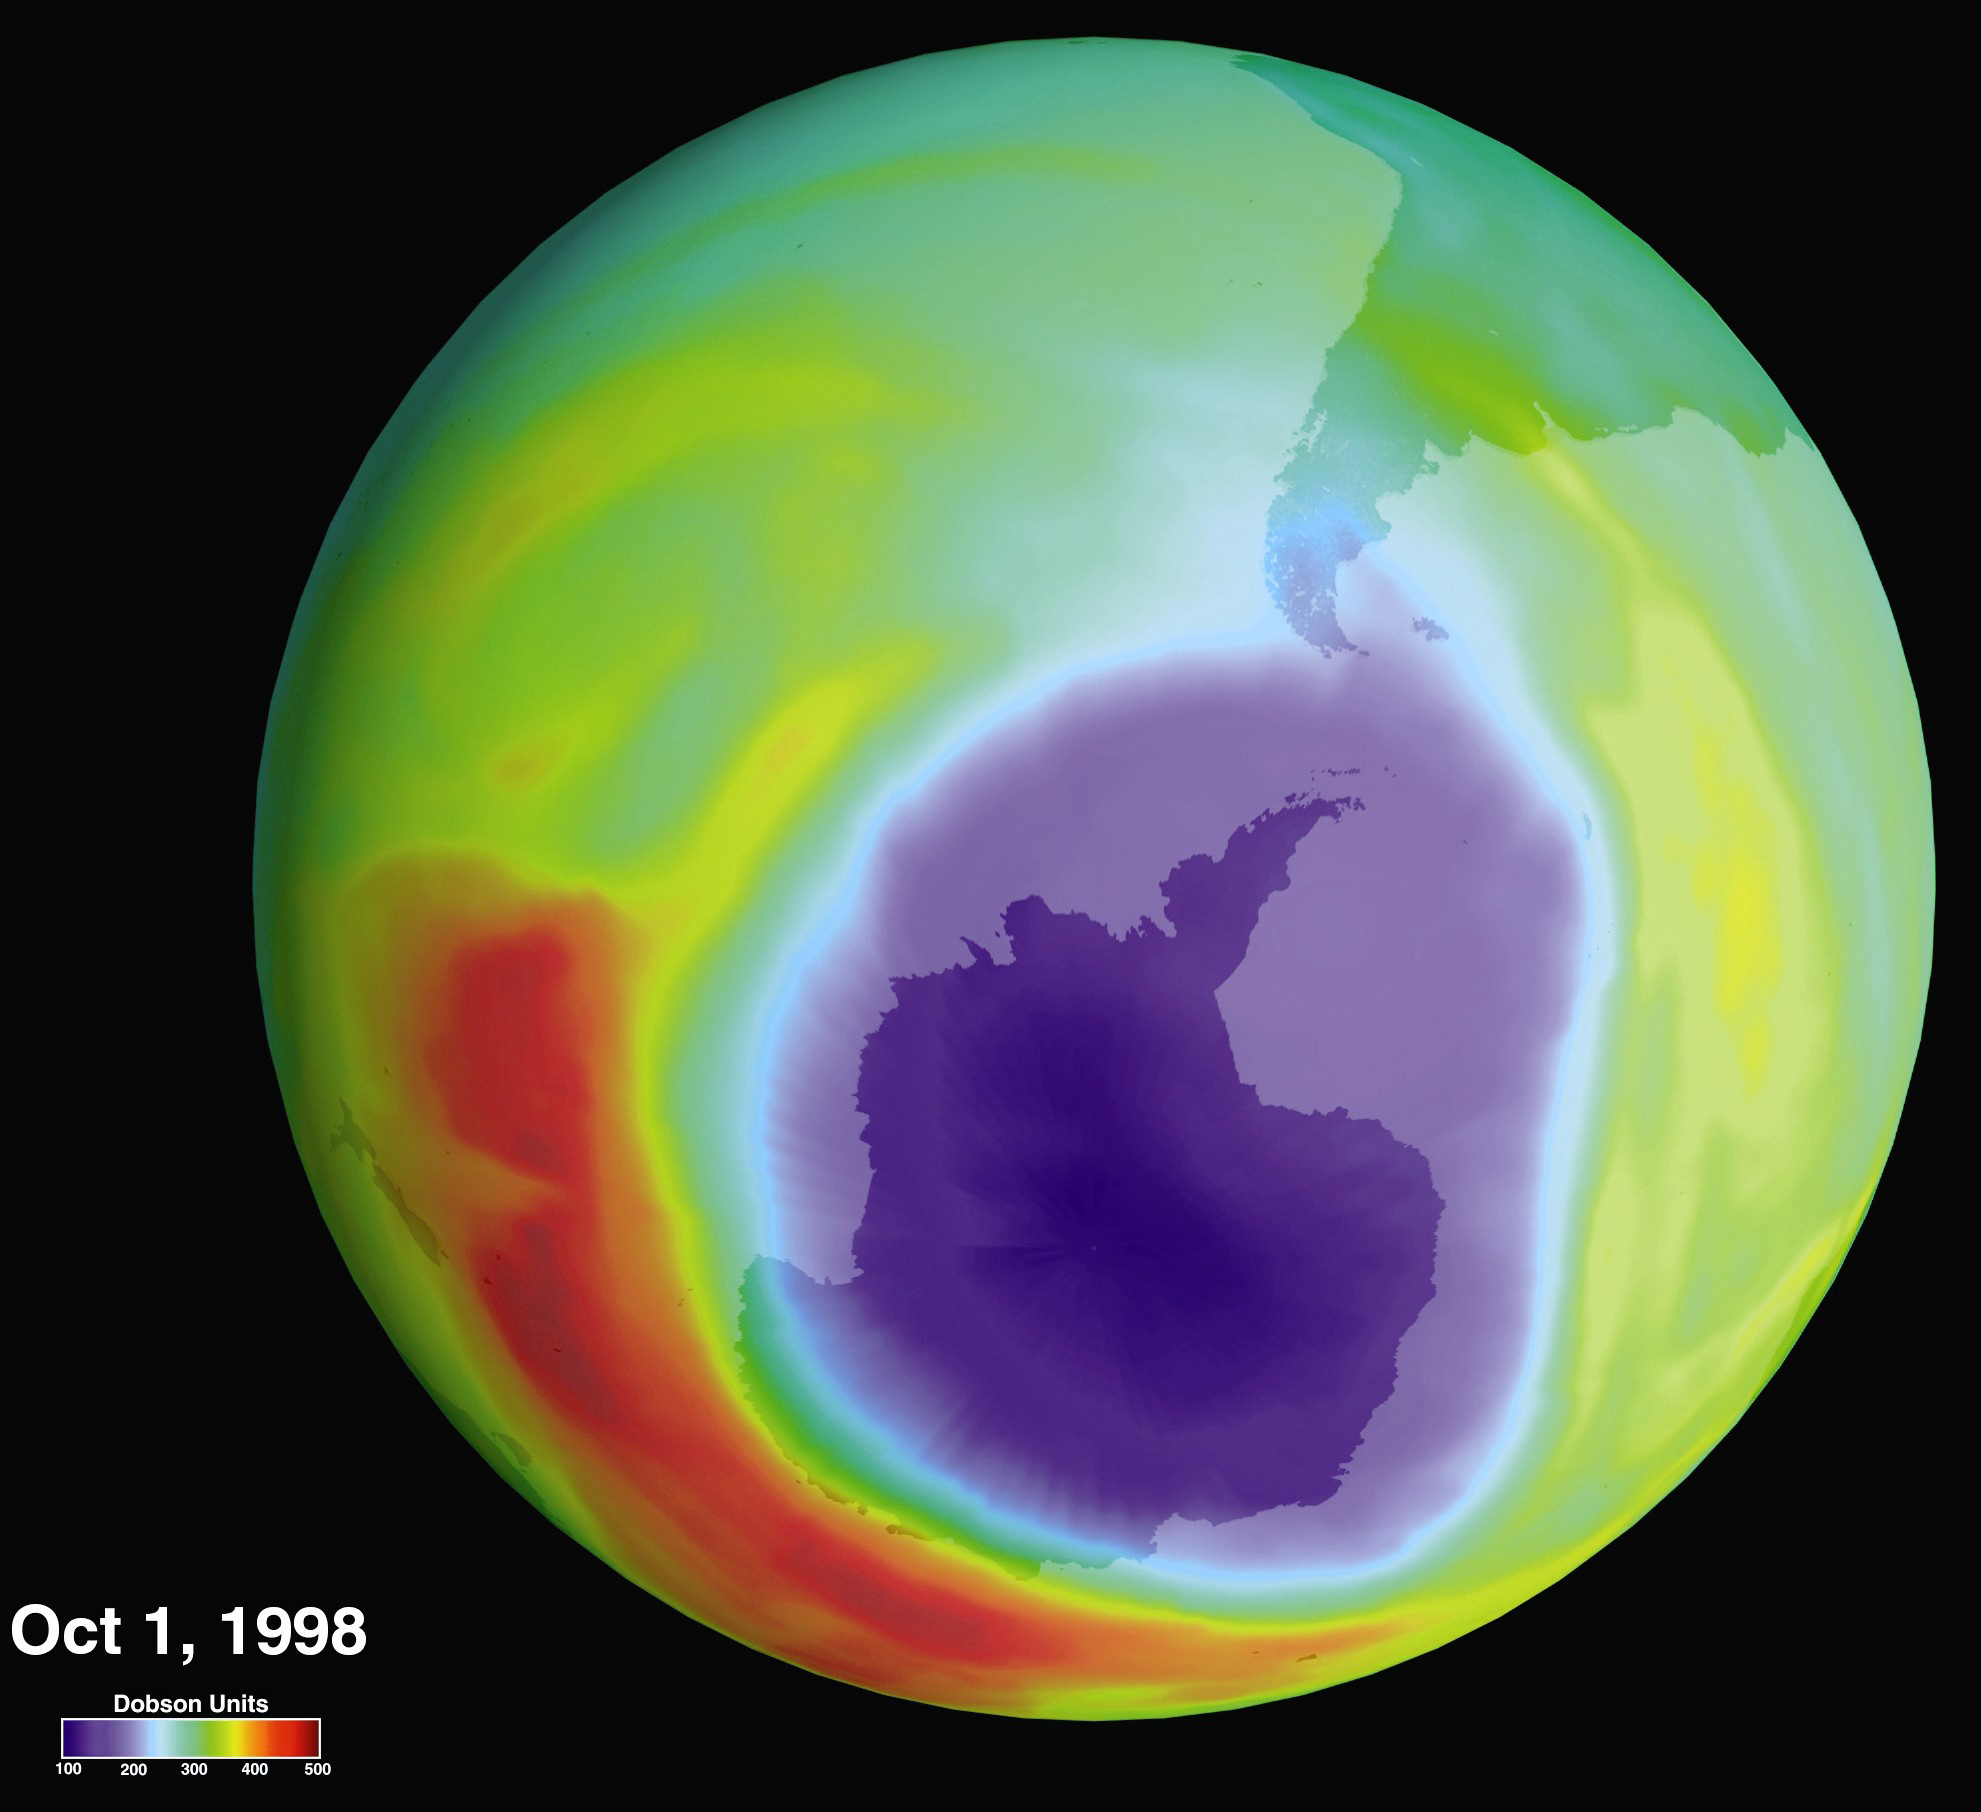 scientists dilemma about the reappearance of the ozone hole over antarctica Warm air helped make 2017 ozone hole smallest since 1988 date: november 2, 2017 the ozone hole over antarctica is expected to gradually become less severe as chlorofluorocarbons scientists expect the antarctic ozone hole to recover back to 1980 levels around 2070.